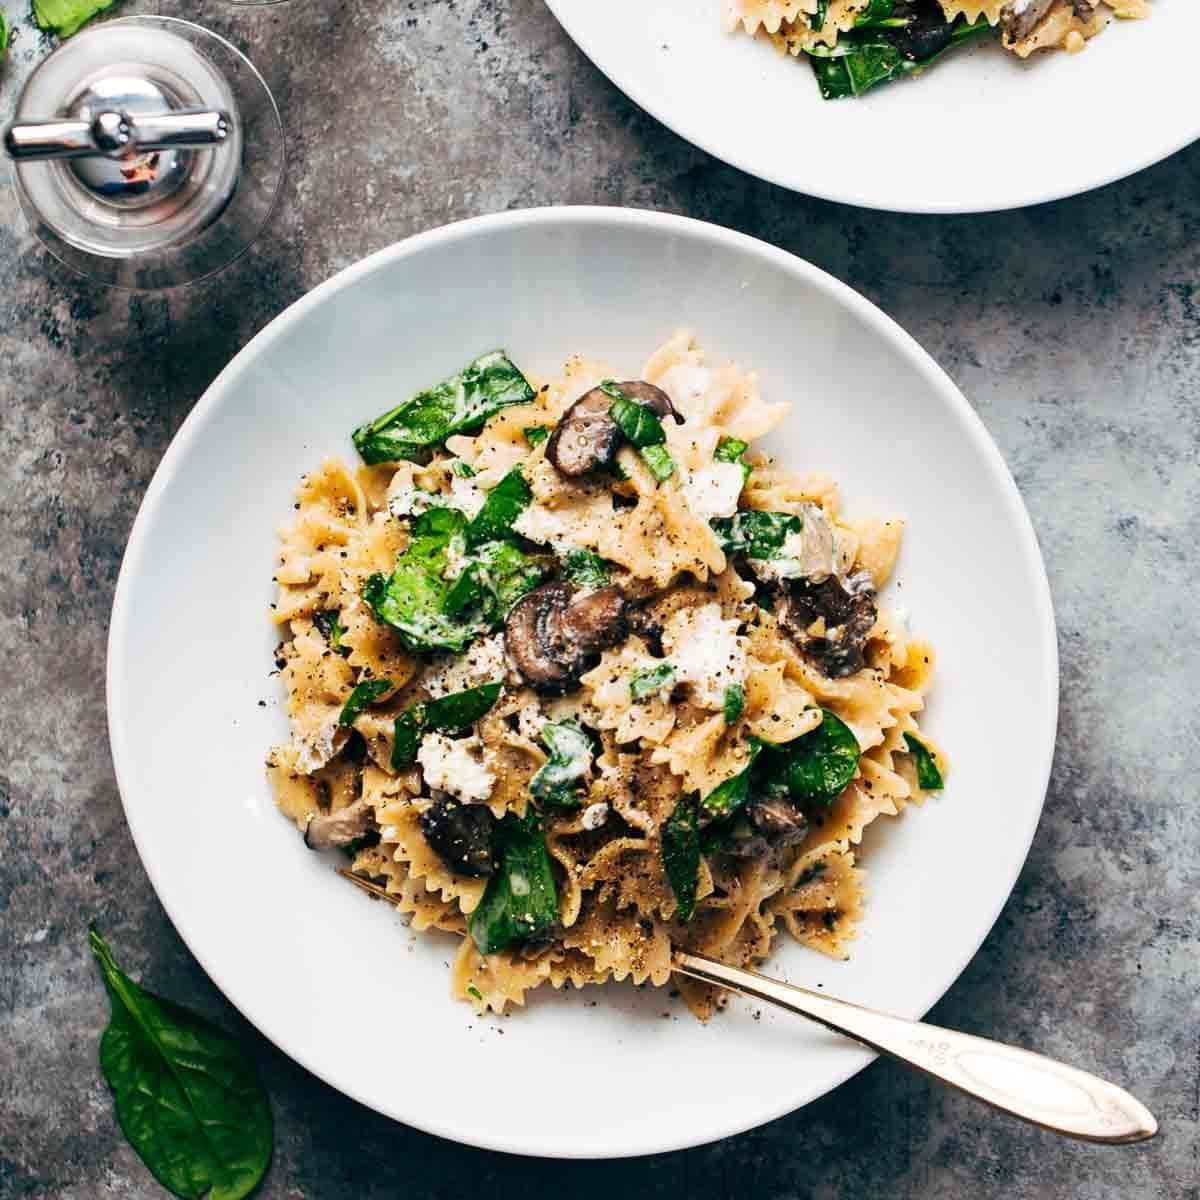 Mushroom Pasta with goat cheese in a bowl.